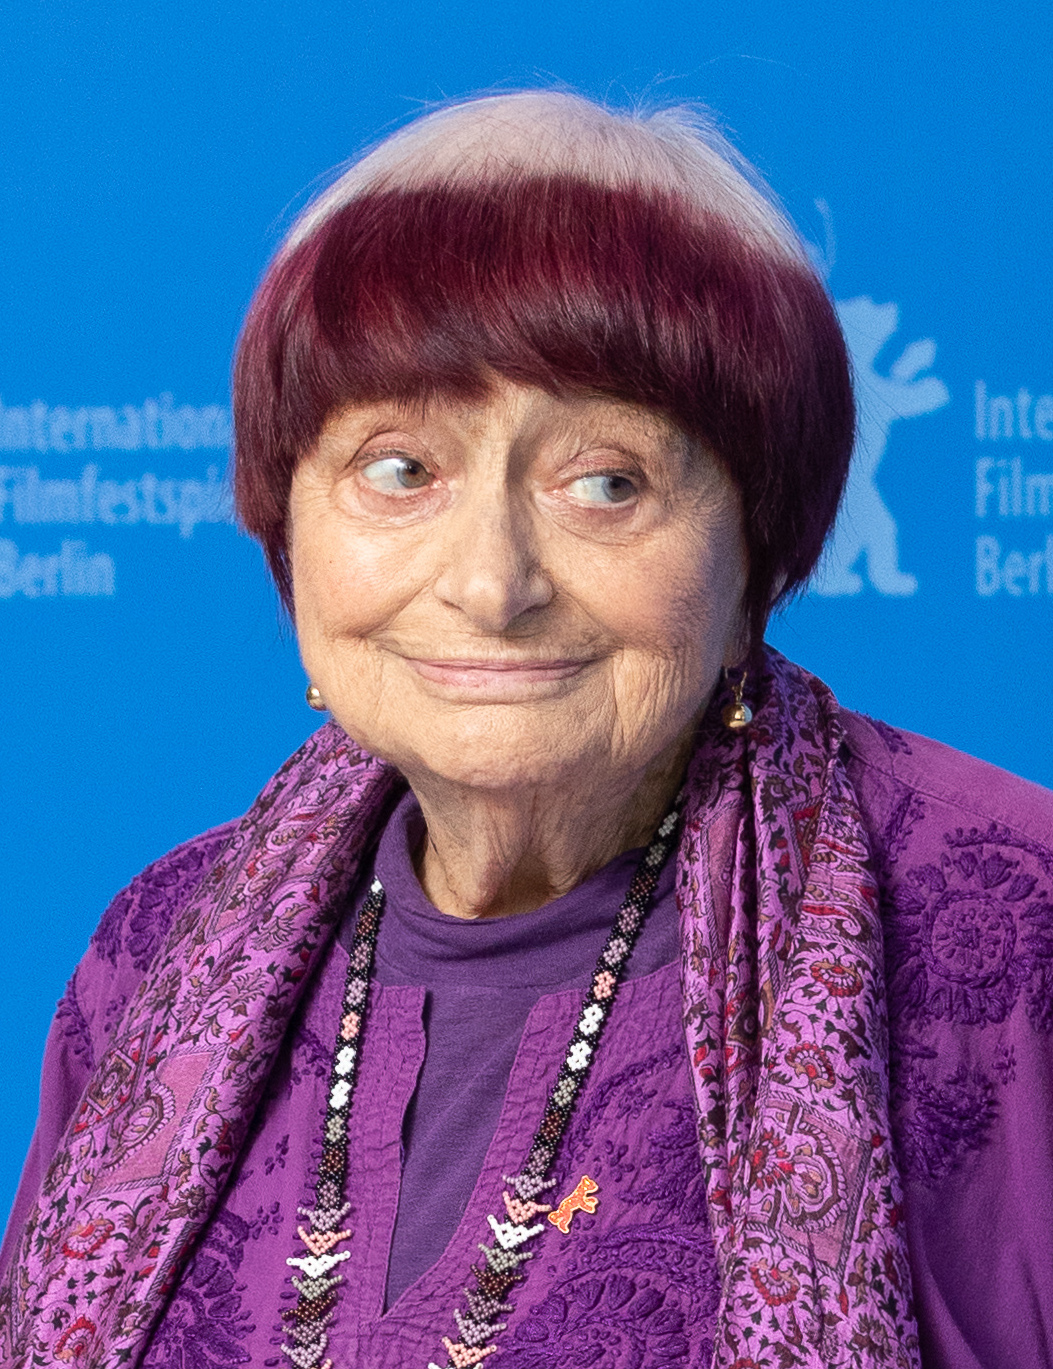 Varda at the Berlinale, February 2019. Courtesy of Wikipedia